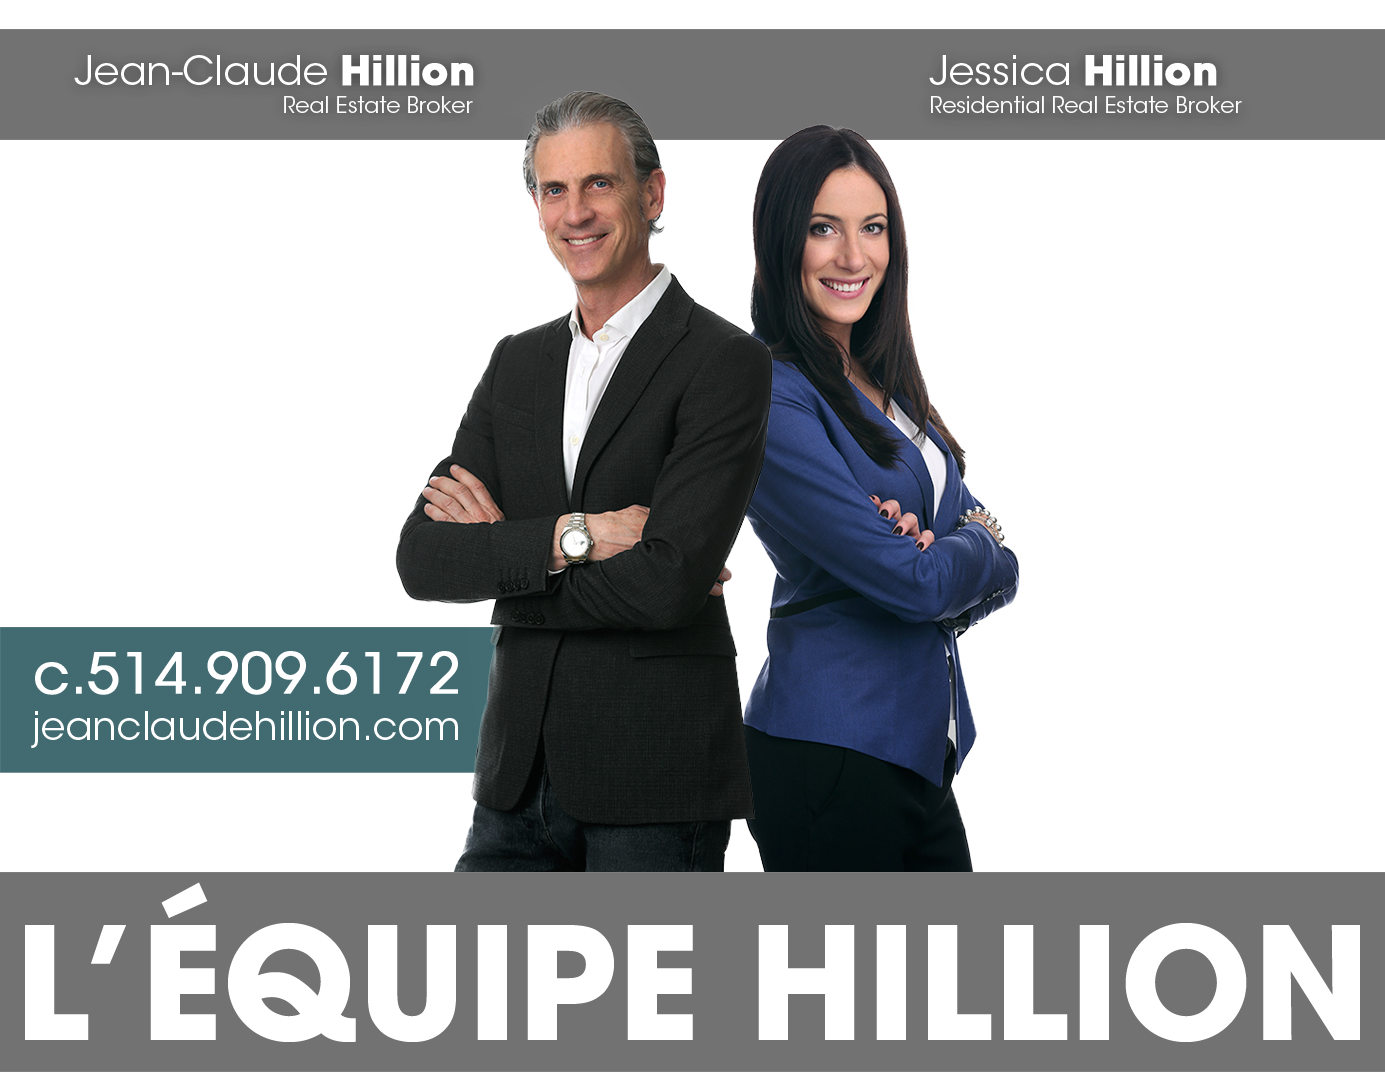 Jean-Claude Hillion, Jessica Hillion - Real Estate Brokers - RE/MAX AMBIANCE INC.